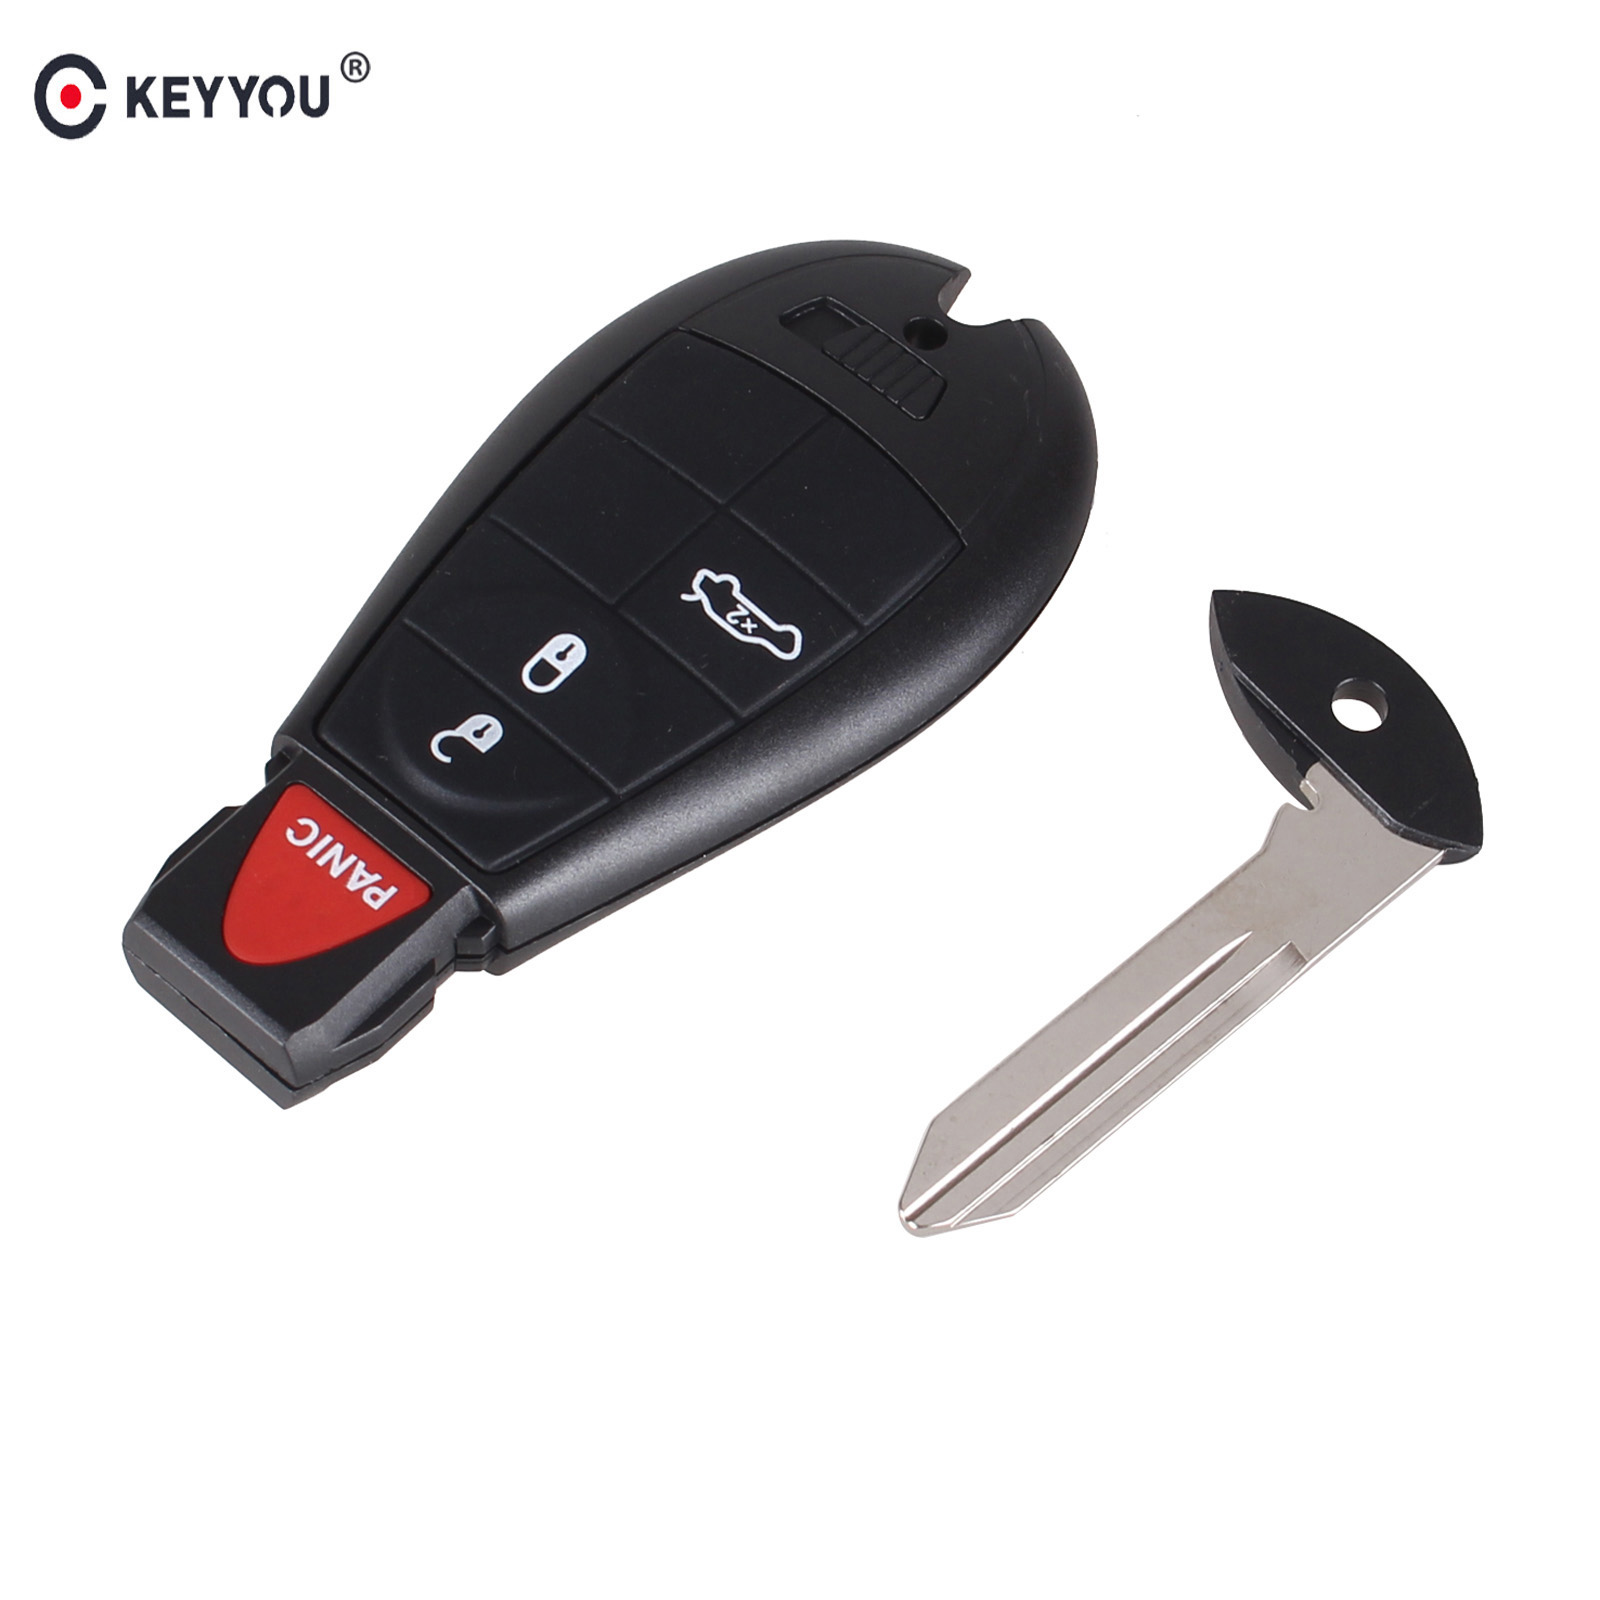 KEYYOU 4 Buttons Remote Case Smart Key Shell For Chrysler For Jeep For Dodge Durango Grand Caravan Grand Cherokee DartKEYYOU 4 Buttons Remote Case Smart Key Shell For Chrysler For Jeep For Dodge Durango Grand Caravan Grand Cherokee Dart